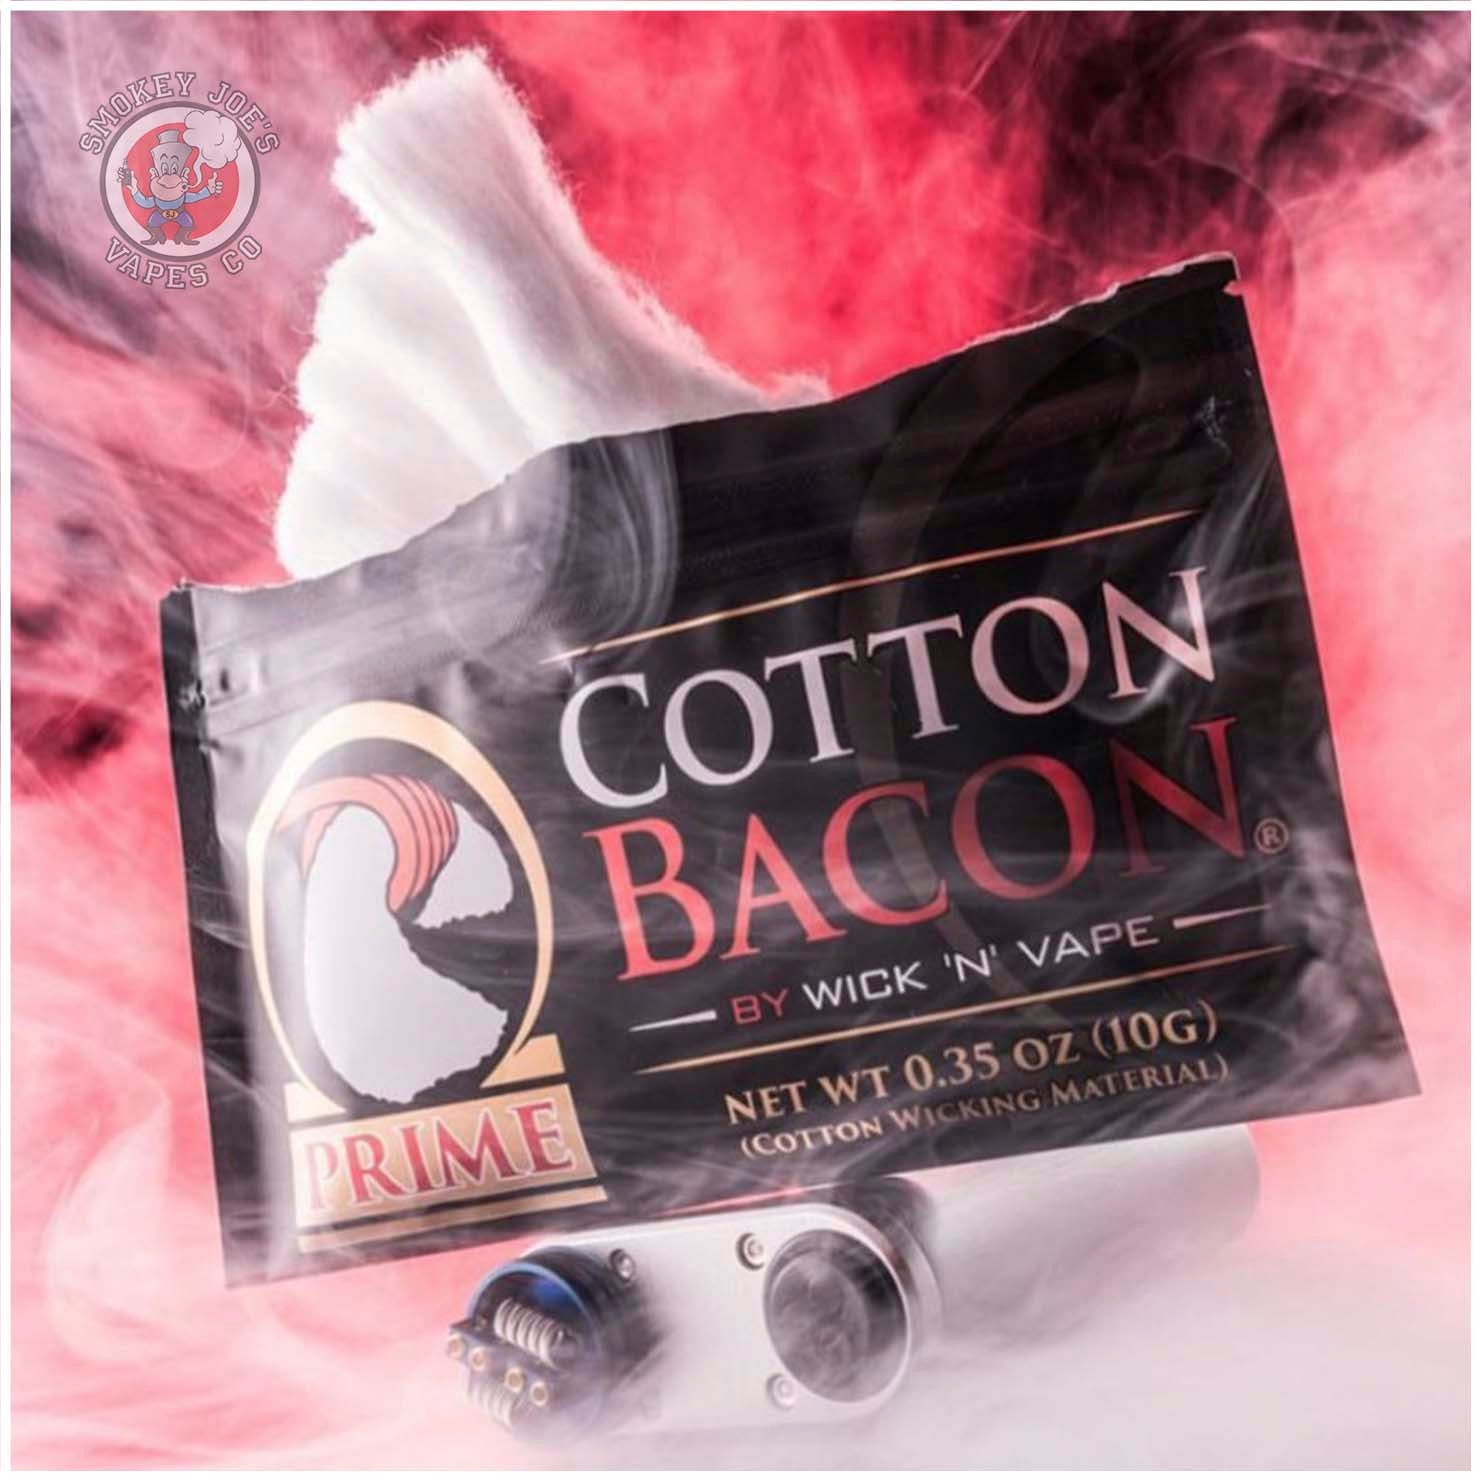 Cotton Bacon Prime | Smokey Joes Vapes Co